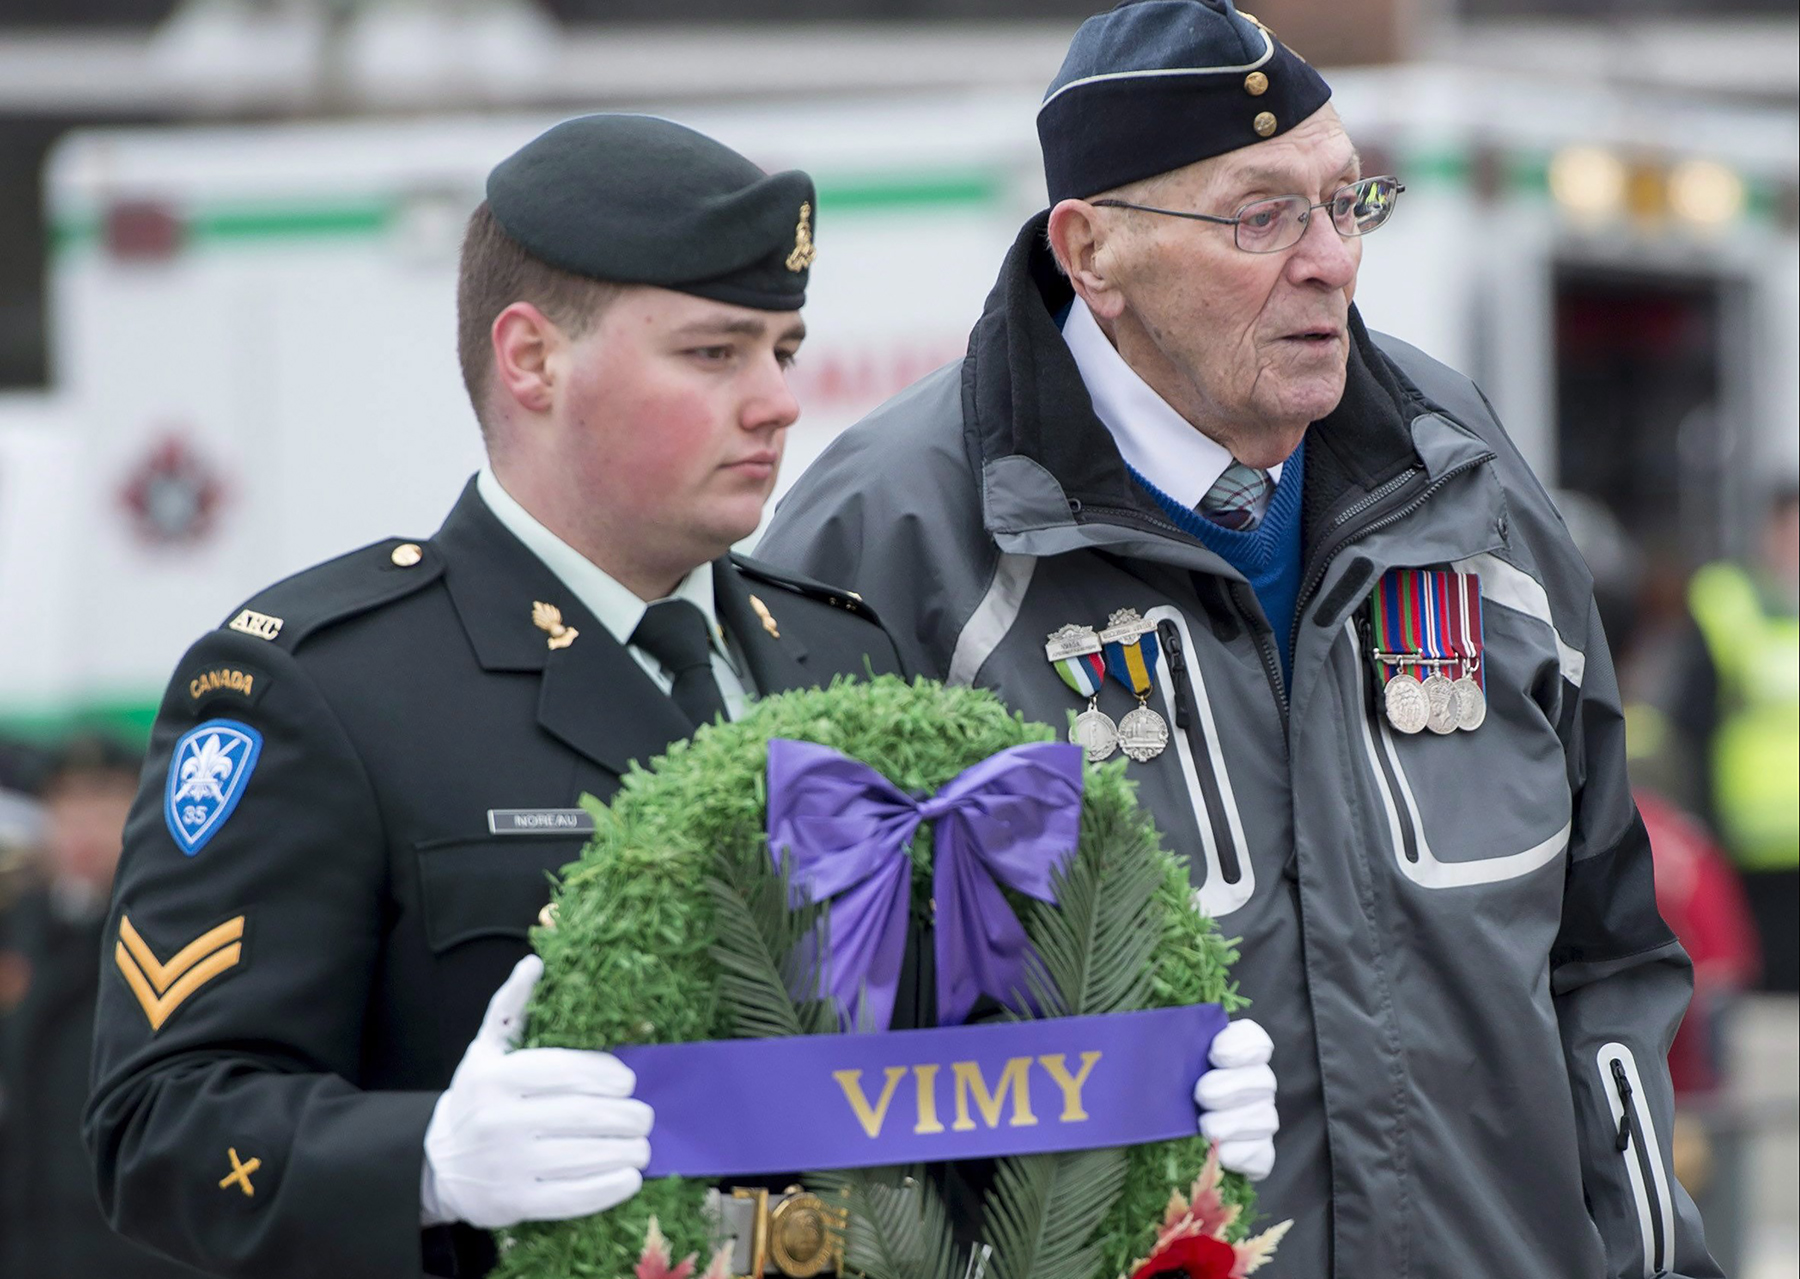 Flying Officer (retired) John R. Newell (right) prepares to lay a wreath during the ceremony marking the 98th anniversary of the Battle of Vimy Ridge at the National War Memorial in Ottawa on April 9, 2015. PHOTO: City News, The Canadian Press/Justin Tang